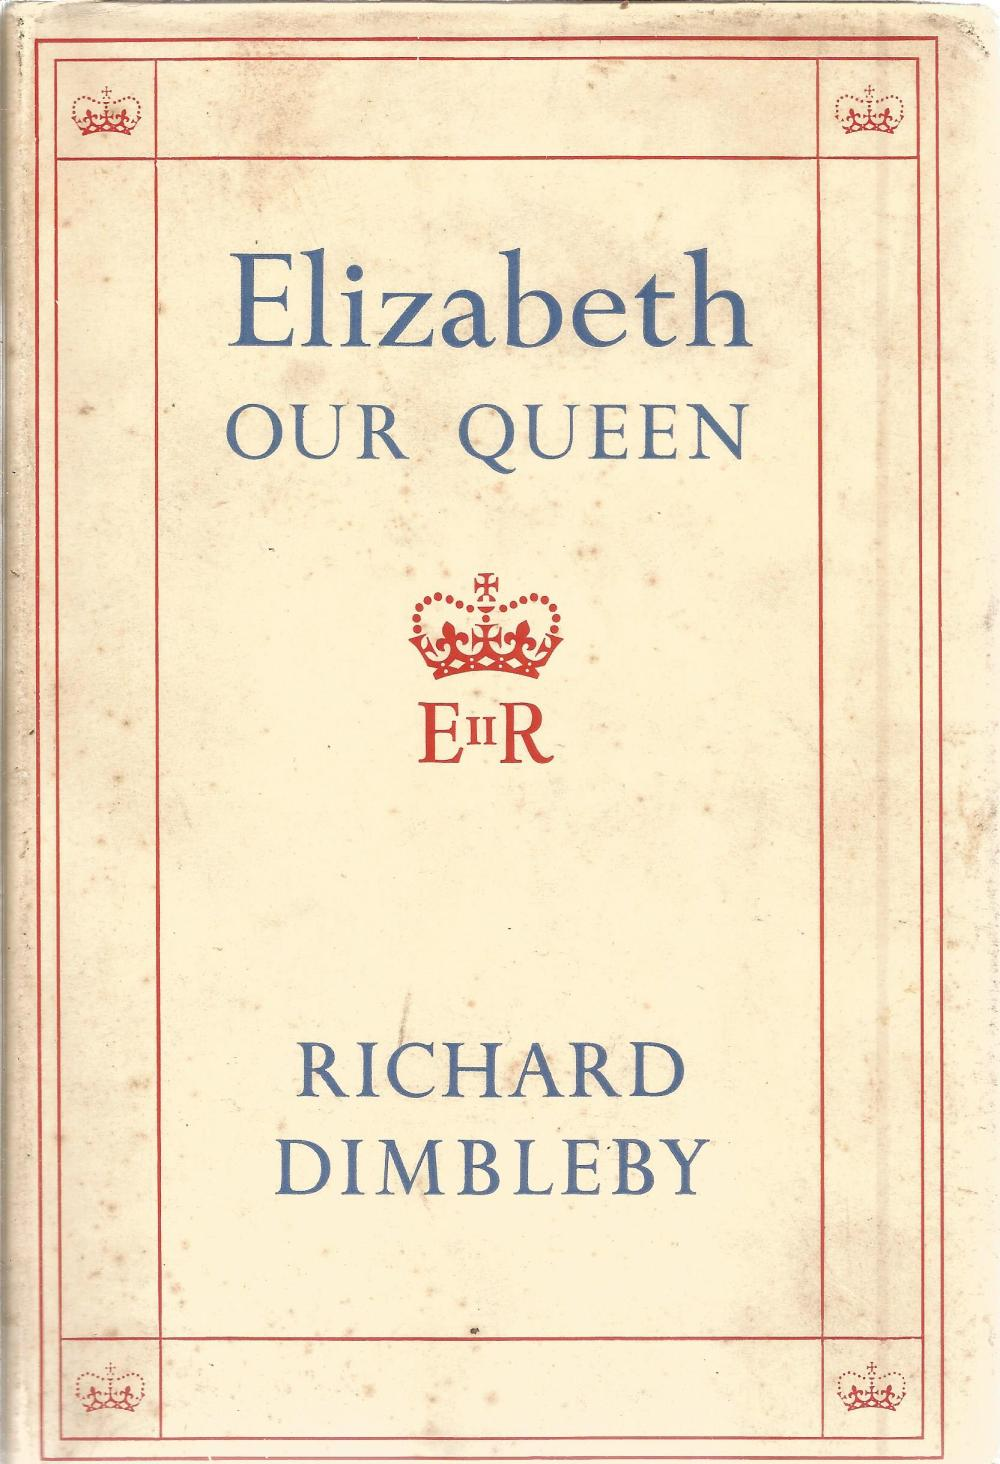 Elizabeth Our Queen by Richard Dimbleby. Unsigned hardback book with dust jacket published in 1953